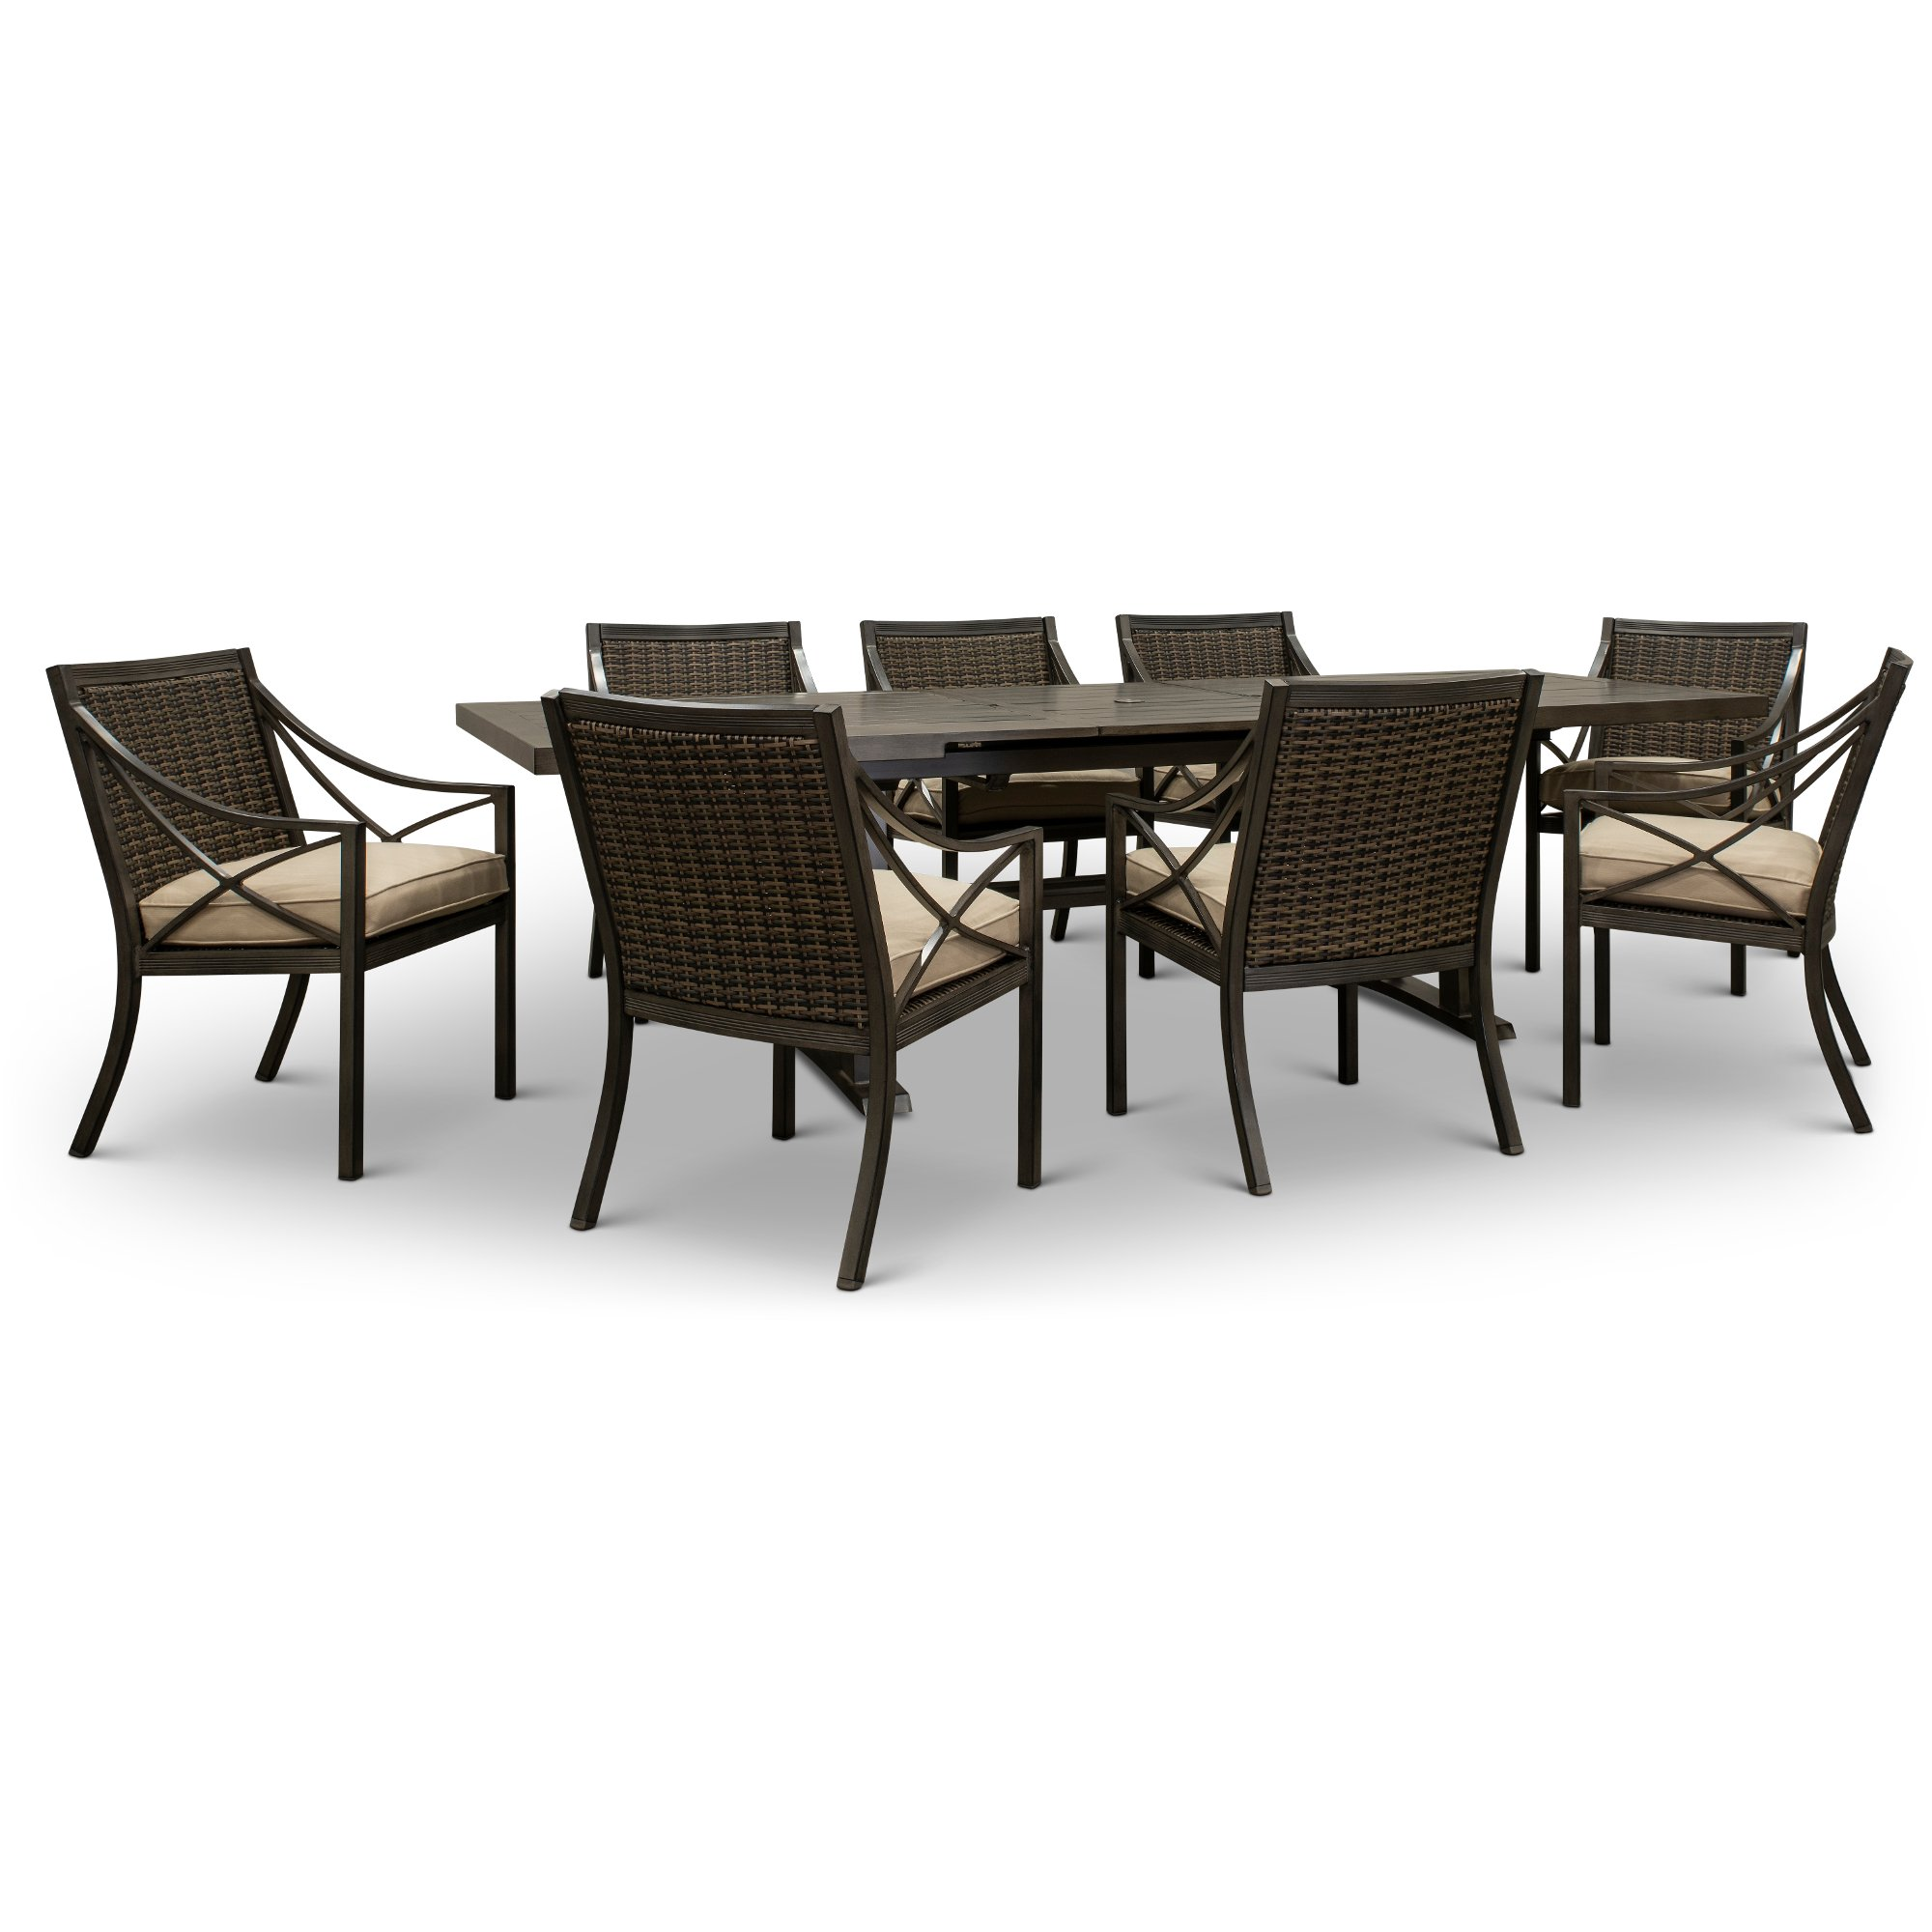 Wicker 9 Piece Patio Dining Set Davenport Rc Willey Furniture Store